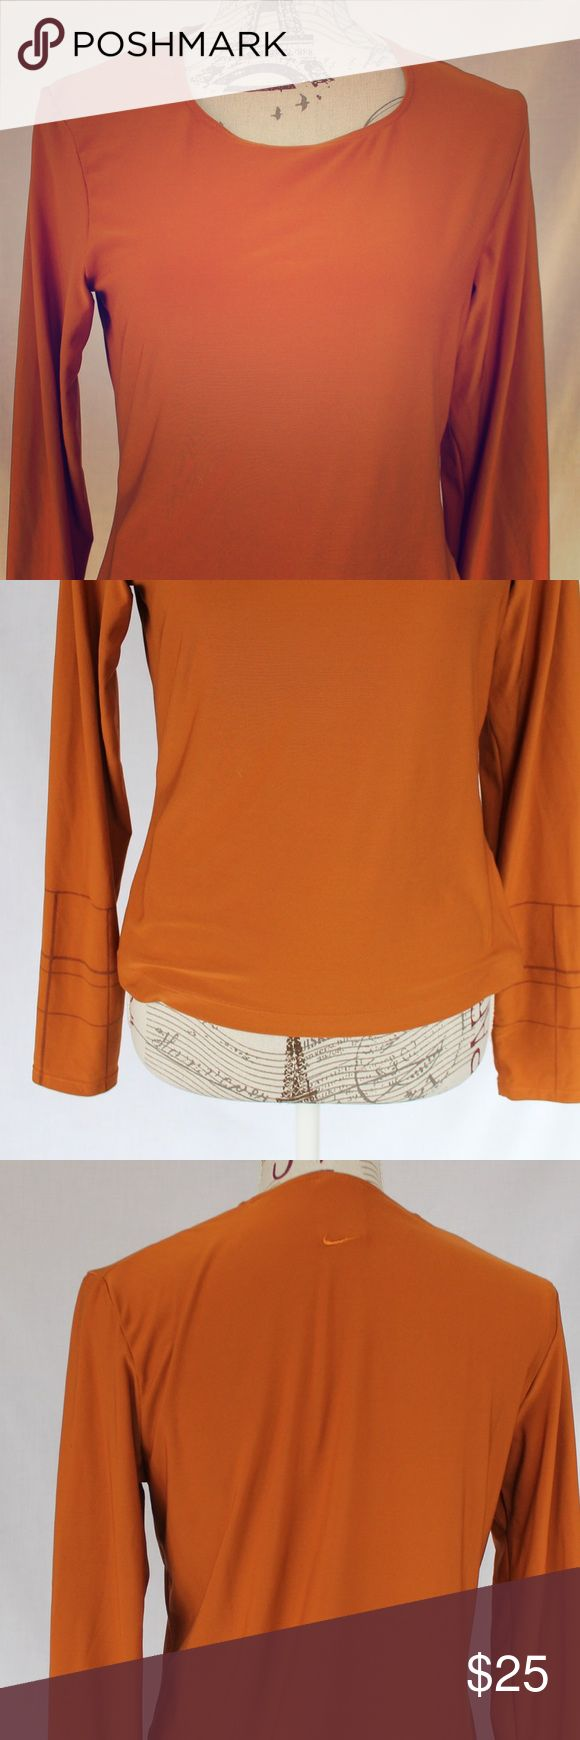 Nike workout gear pumpkin orange long sleeve shirt Nike workout gear pumpkin orange long sleeve shirt.  Cute design on cuffs!  Great as stand alone or thermal layer. Nike Tops Tees - Long Sleeve